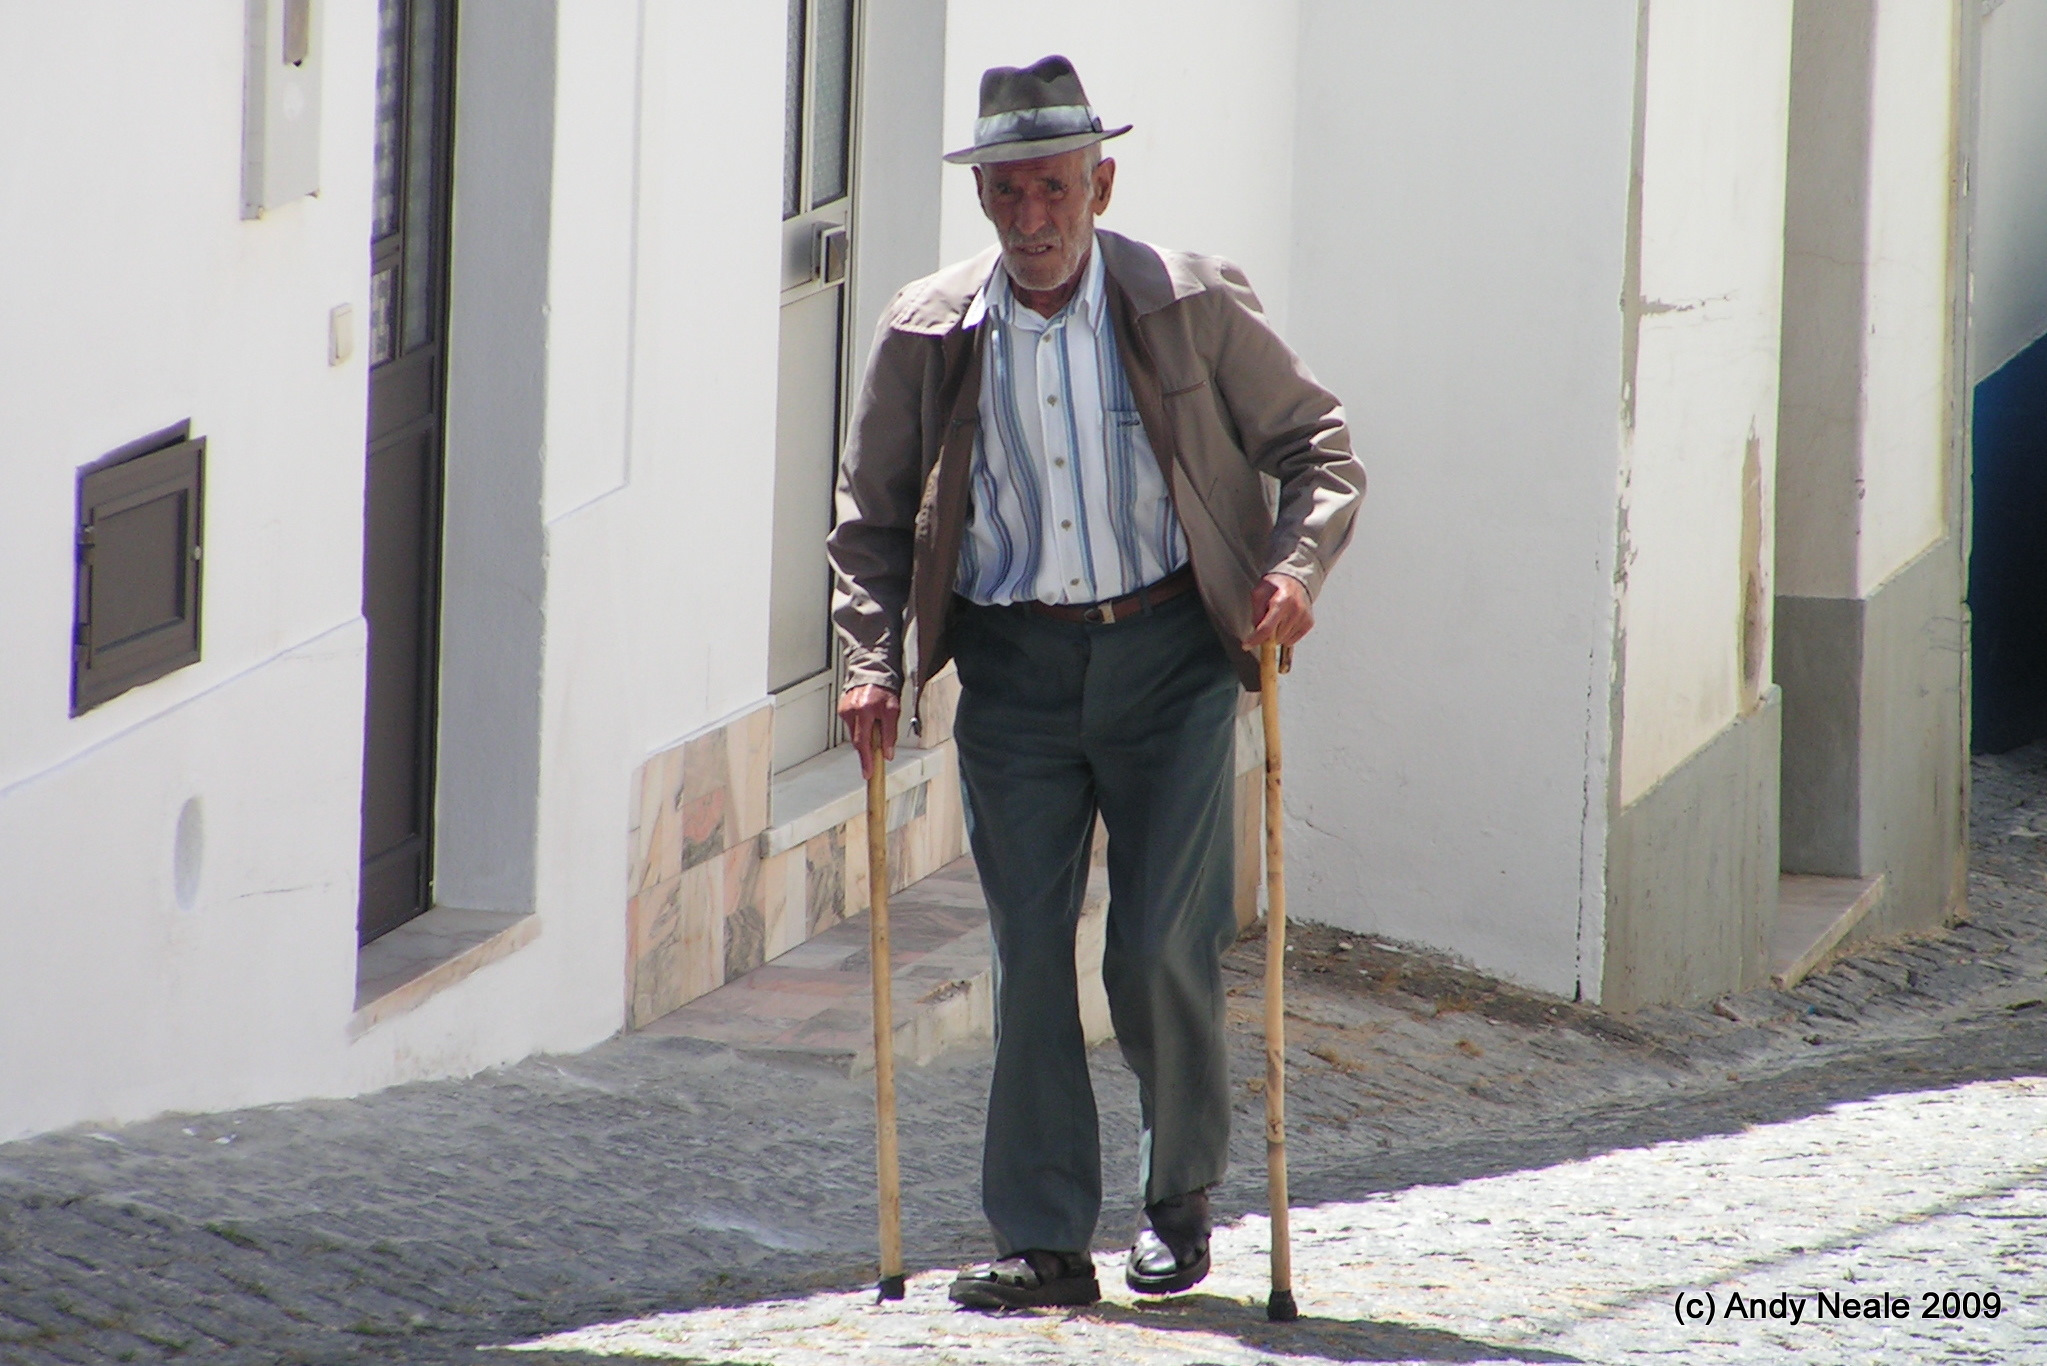 elderly man walking - photo #38